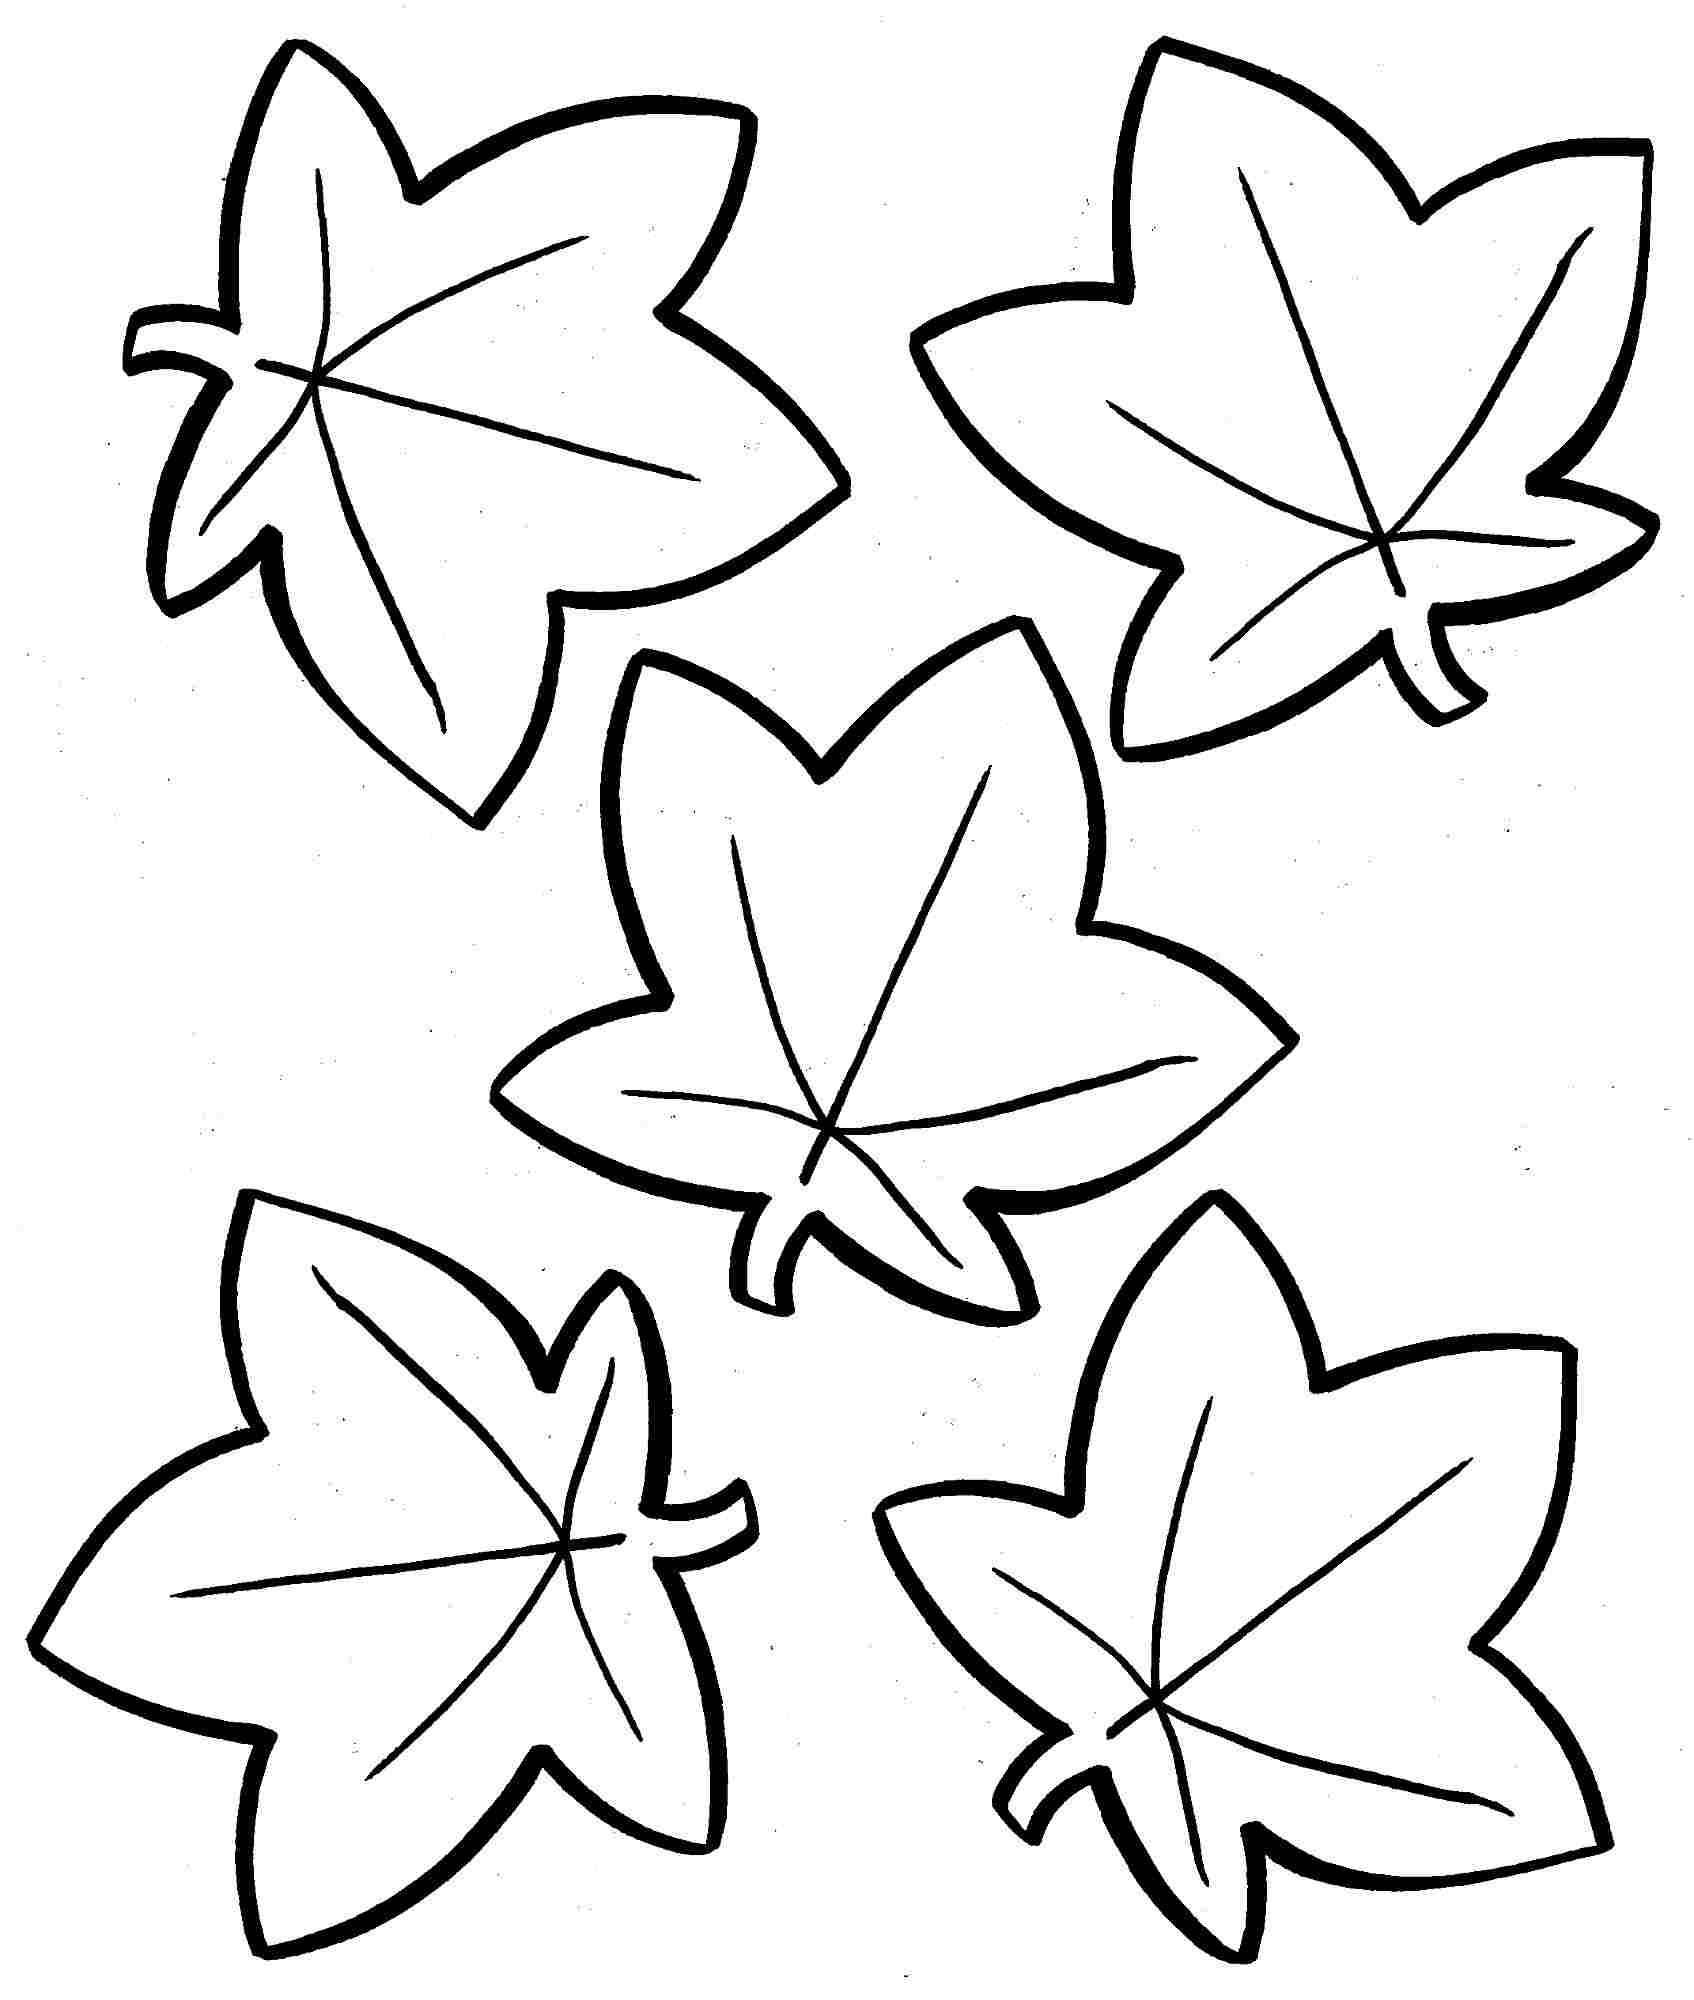 Coloring Pages Coloring Pages Fall Printable fall coloring pages free printable az leaves pages